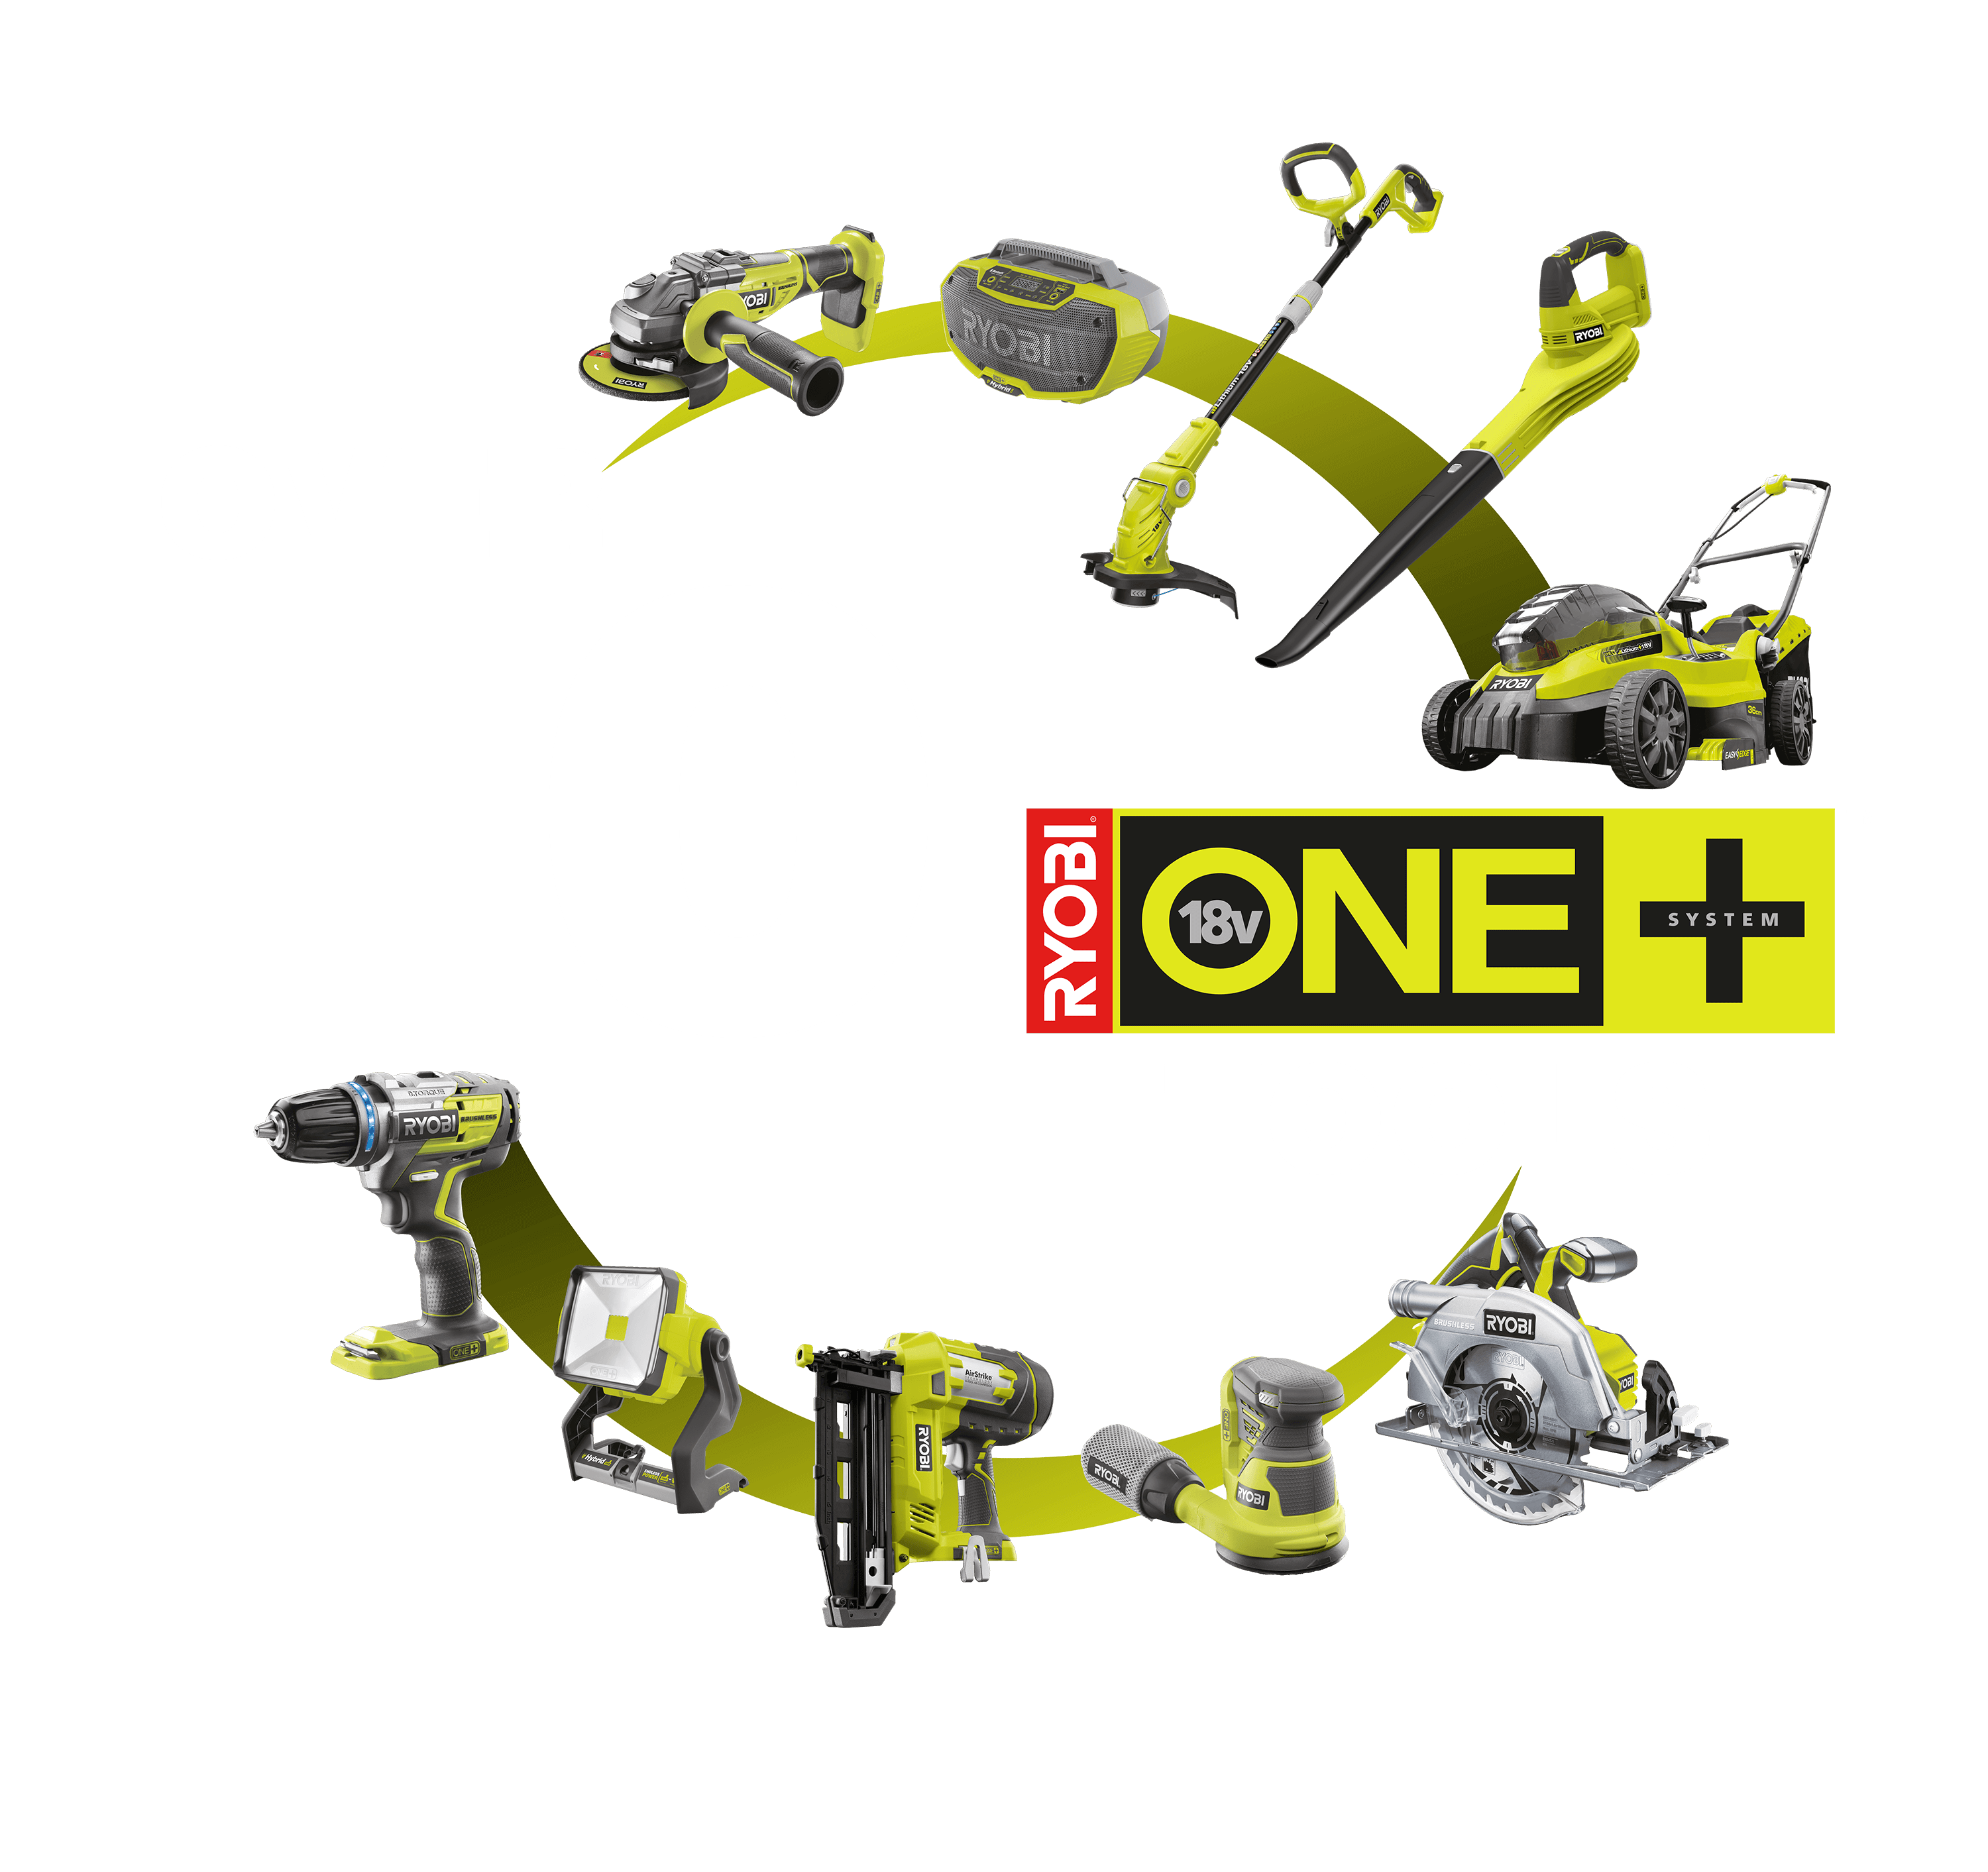 Over 70 tools graphic